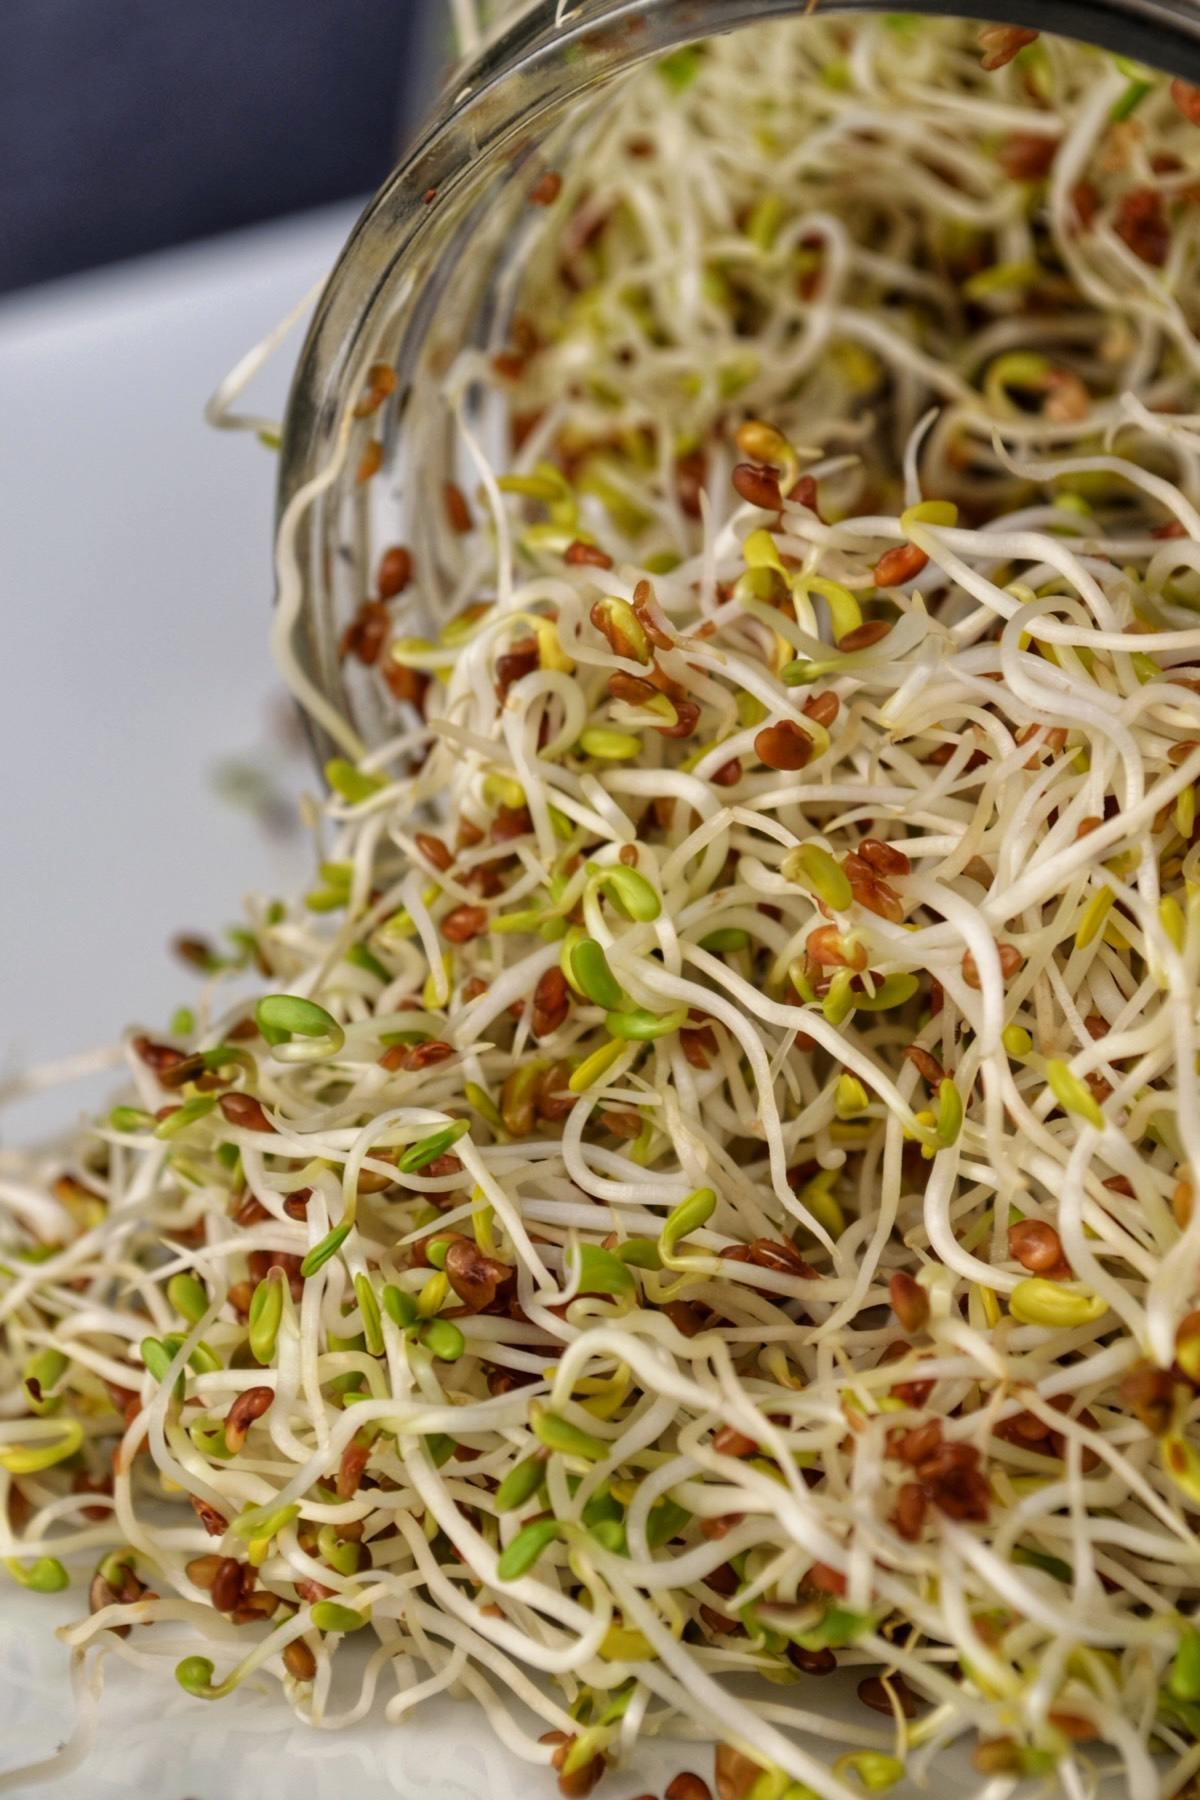 A big clump Alfalfa sprouts.